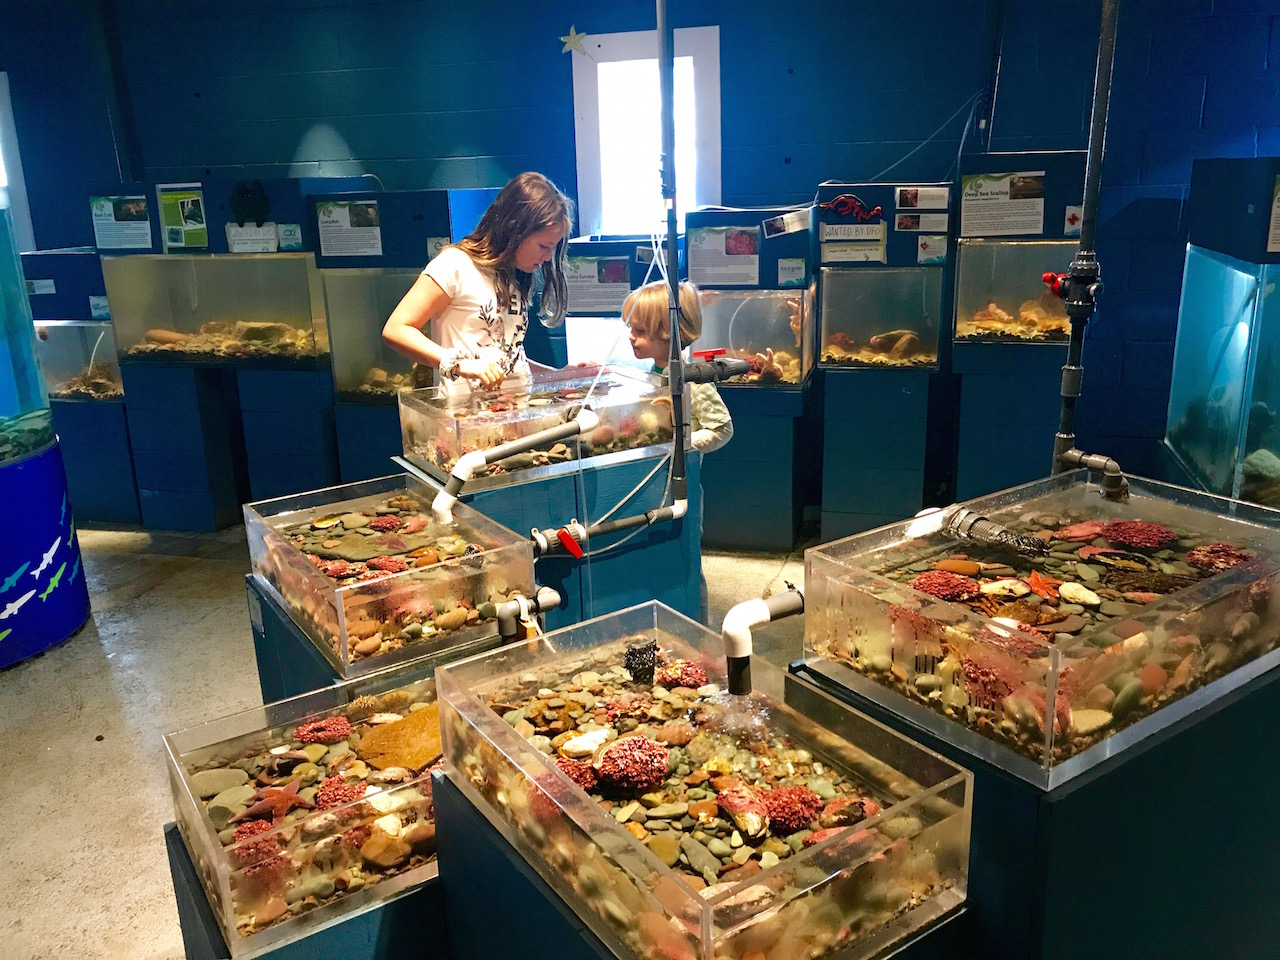 Petty Harbour mini aquarium and writer's kids